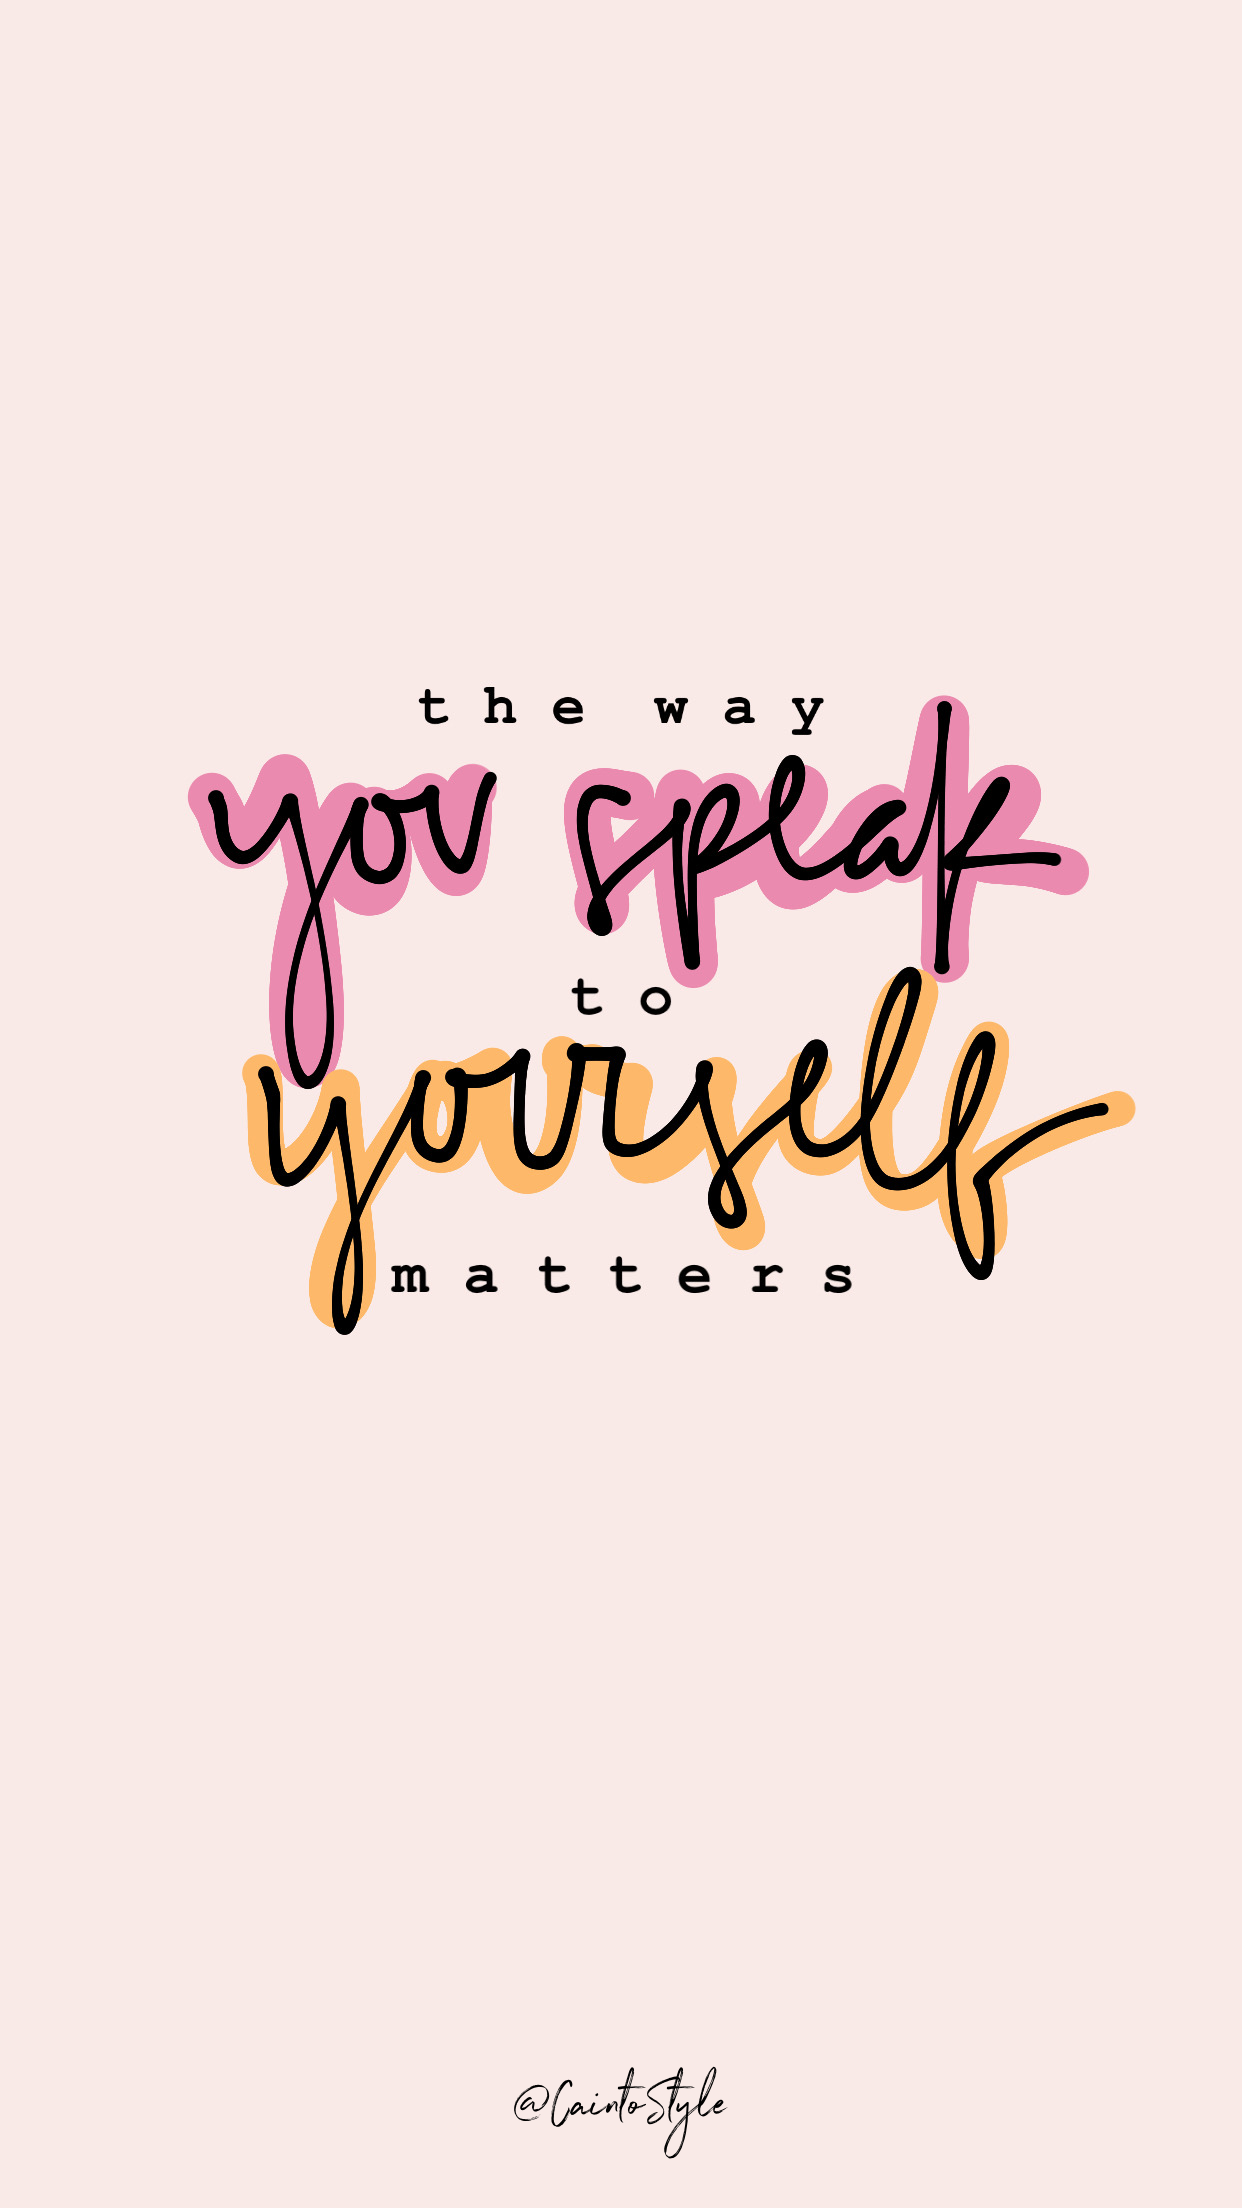 Encouraging Quotes iPhone Wallpaper Daily encouragement quotes 1242x2208